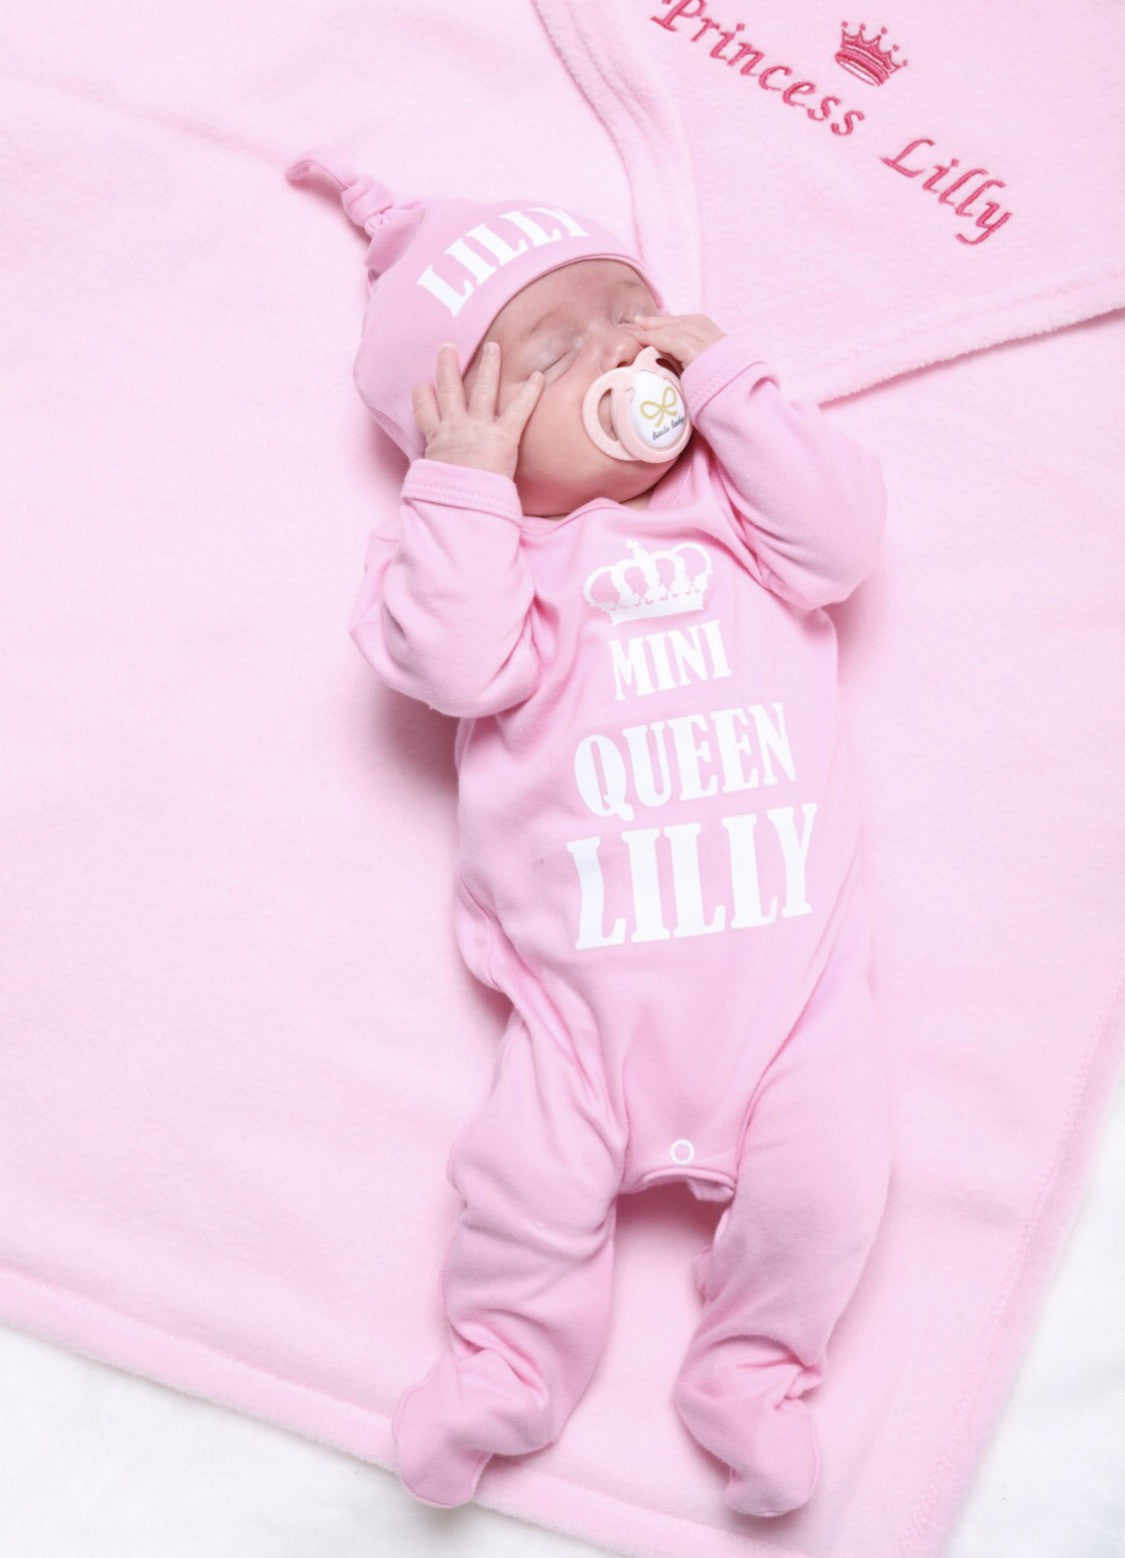 Personalised Mini Queen Babygrow And Hat Set Mini Kings Queens